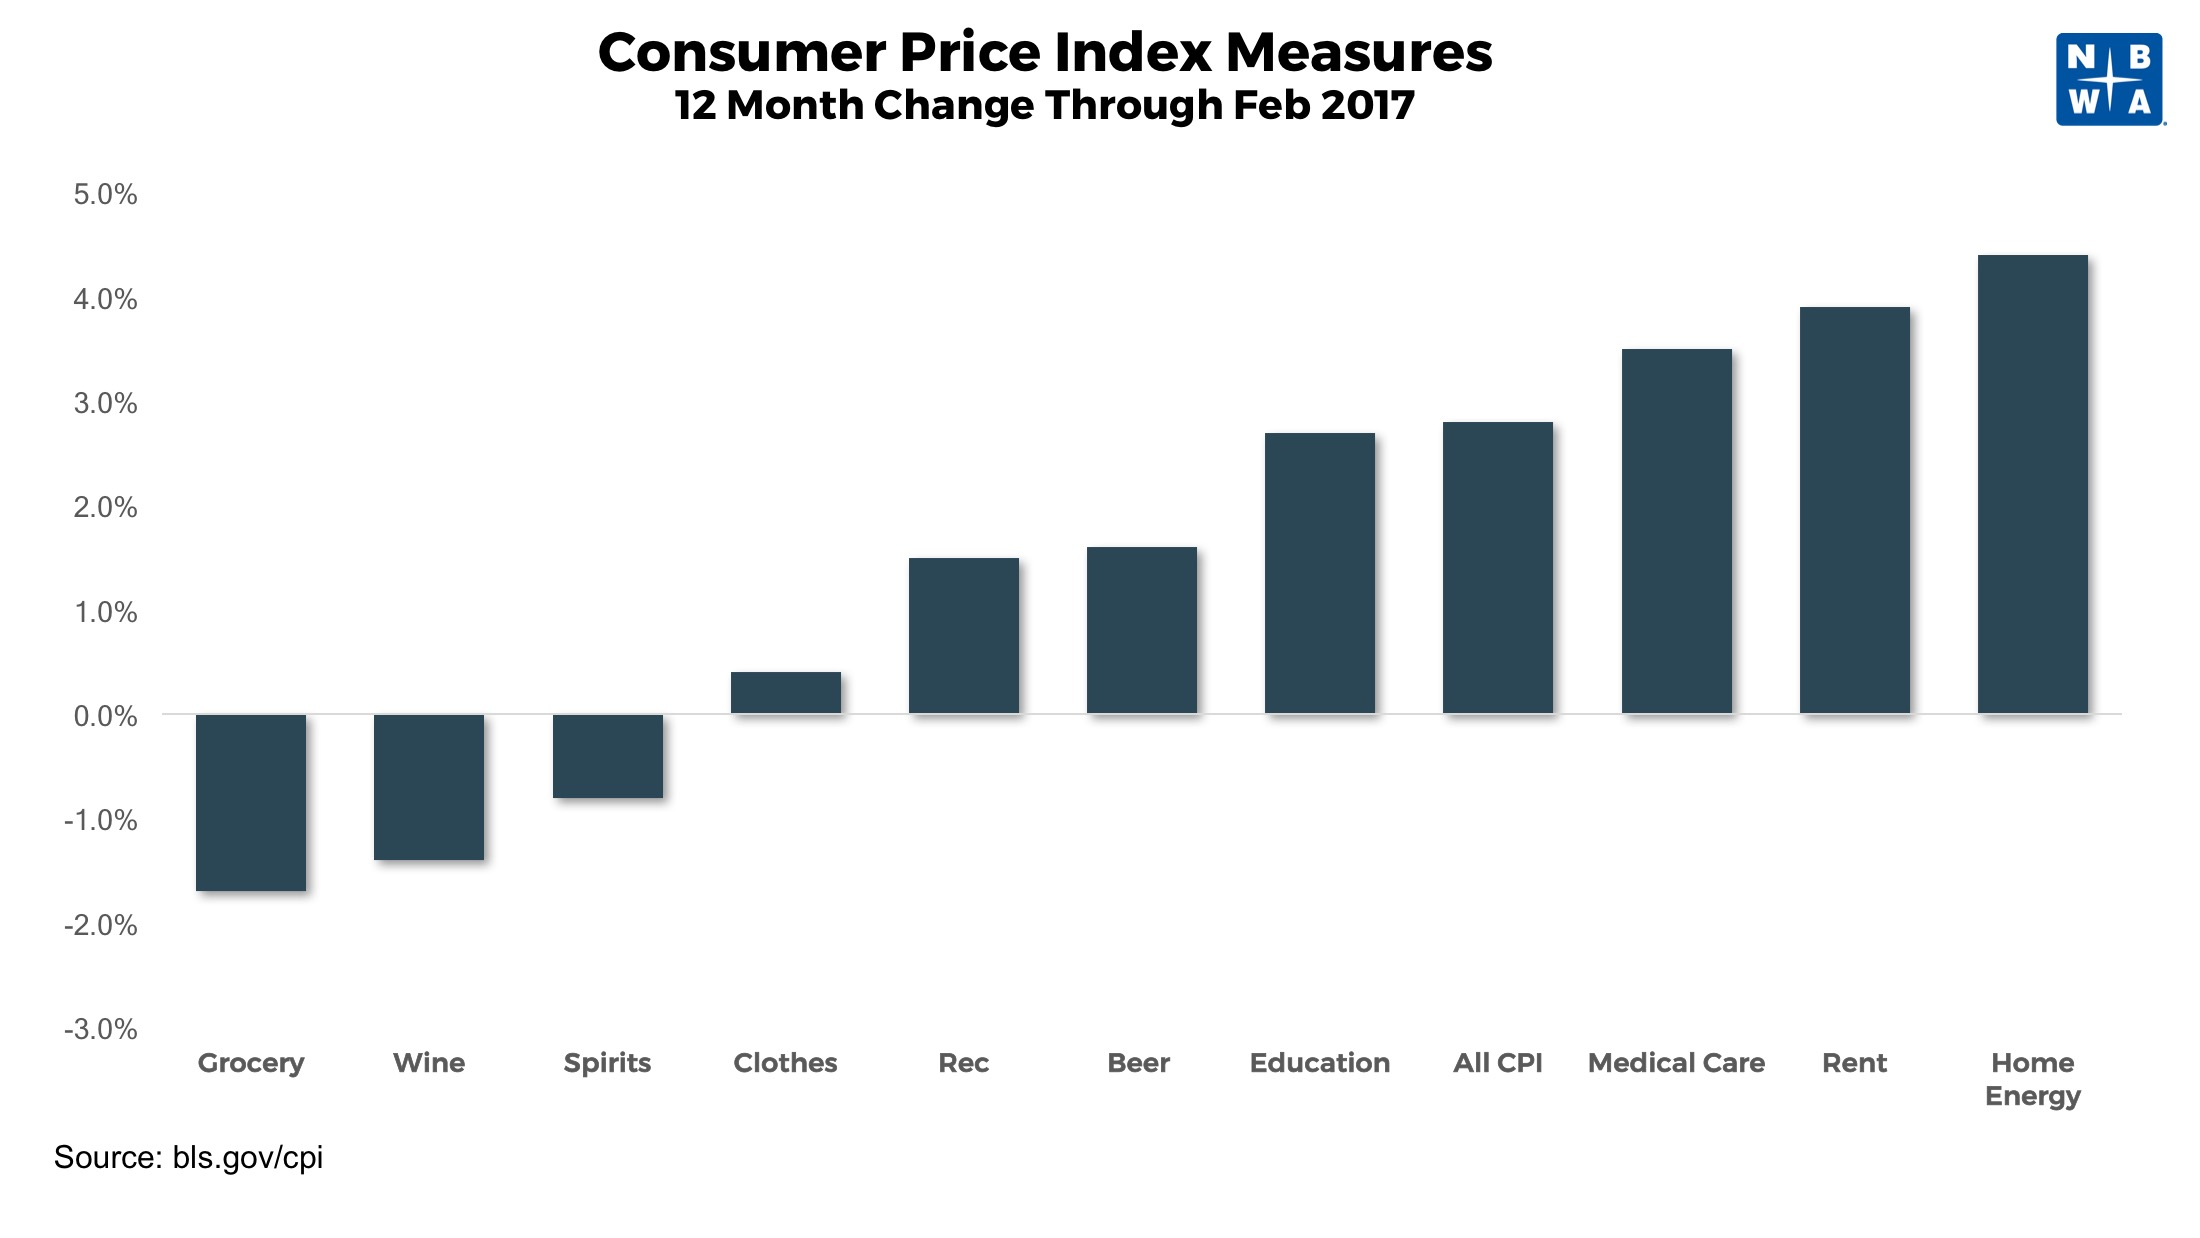 Consumer Price Index Measures 12 Month Change Through February 2017